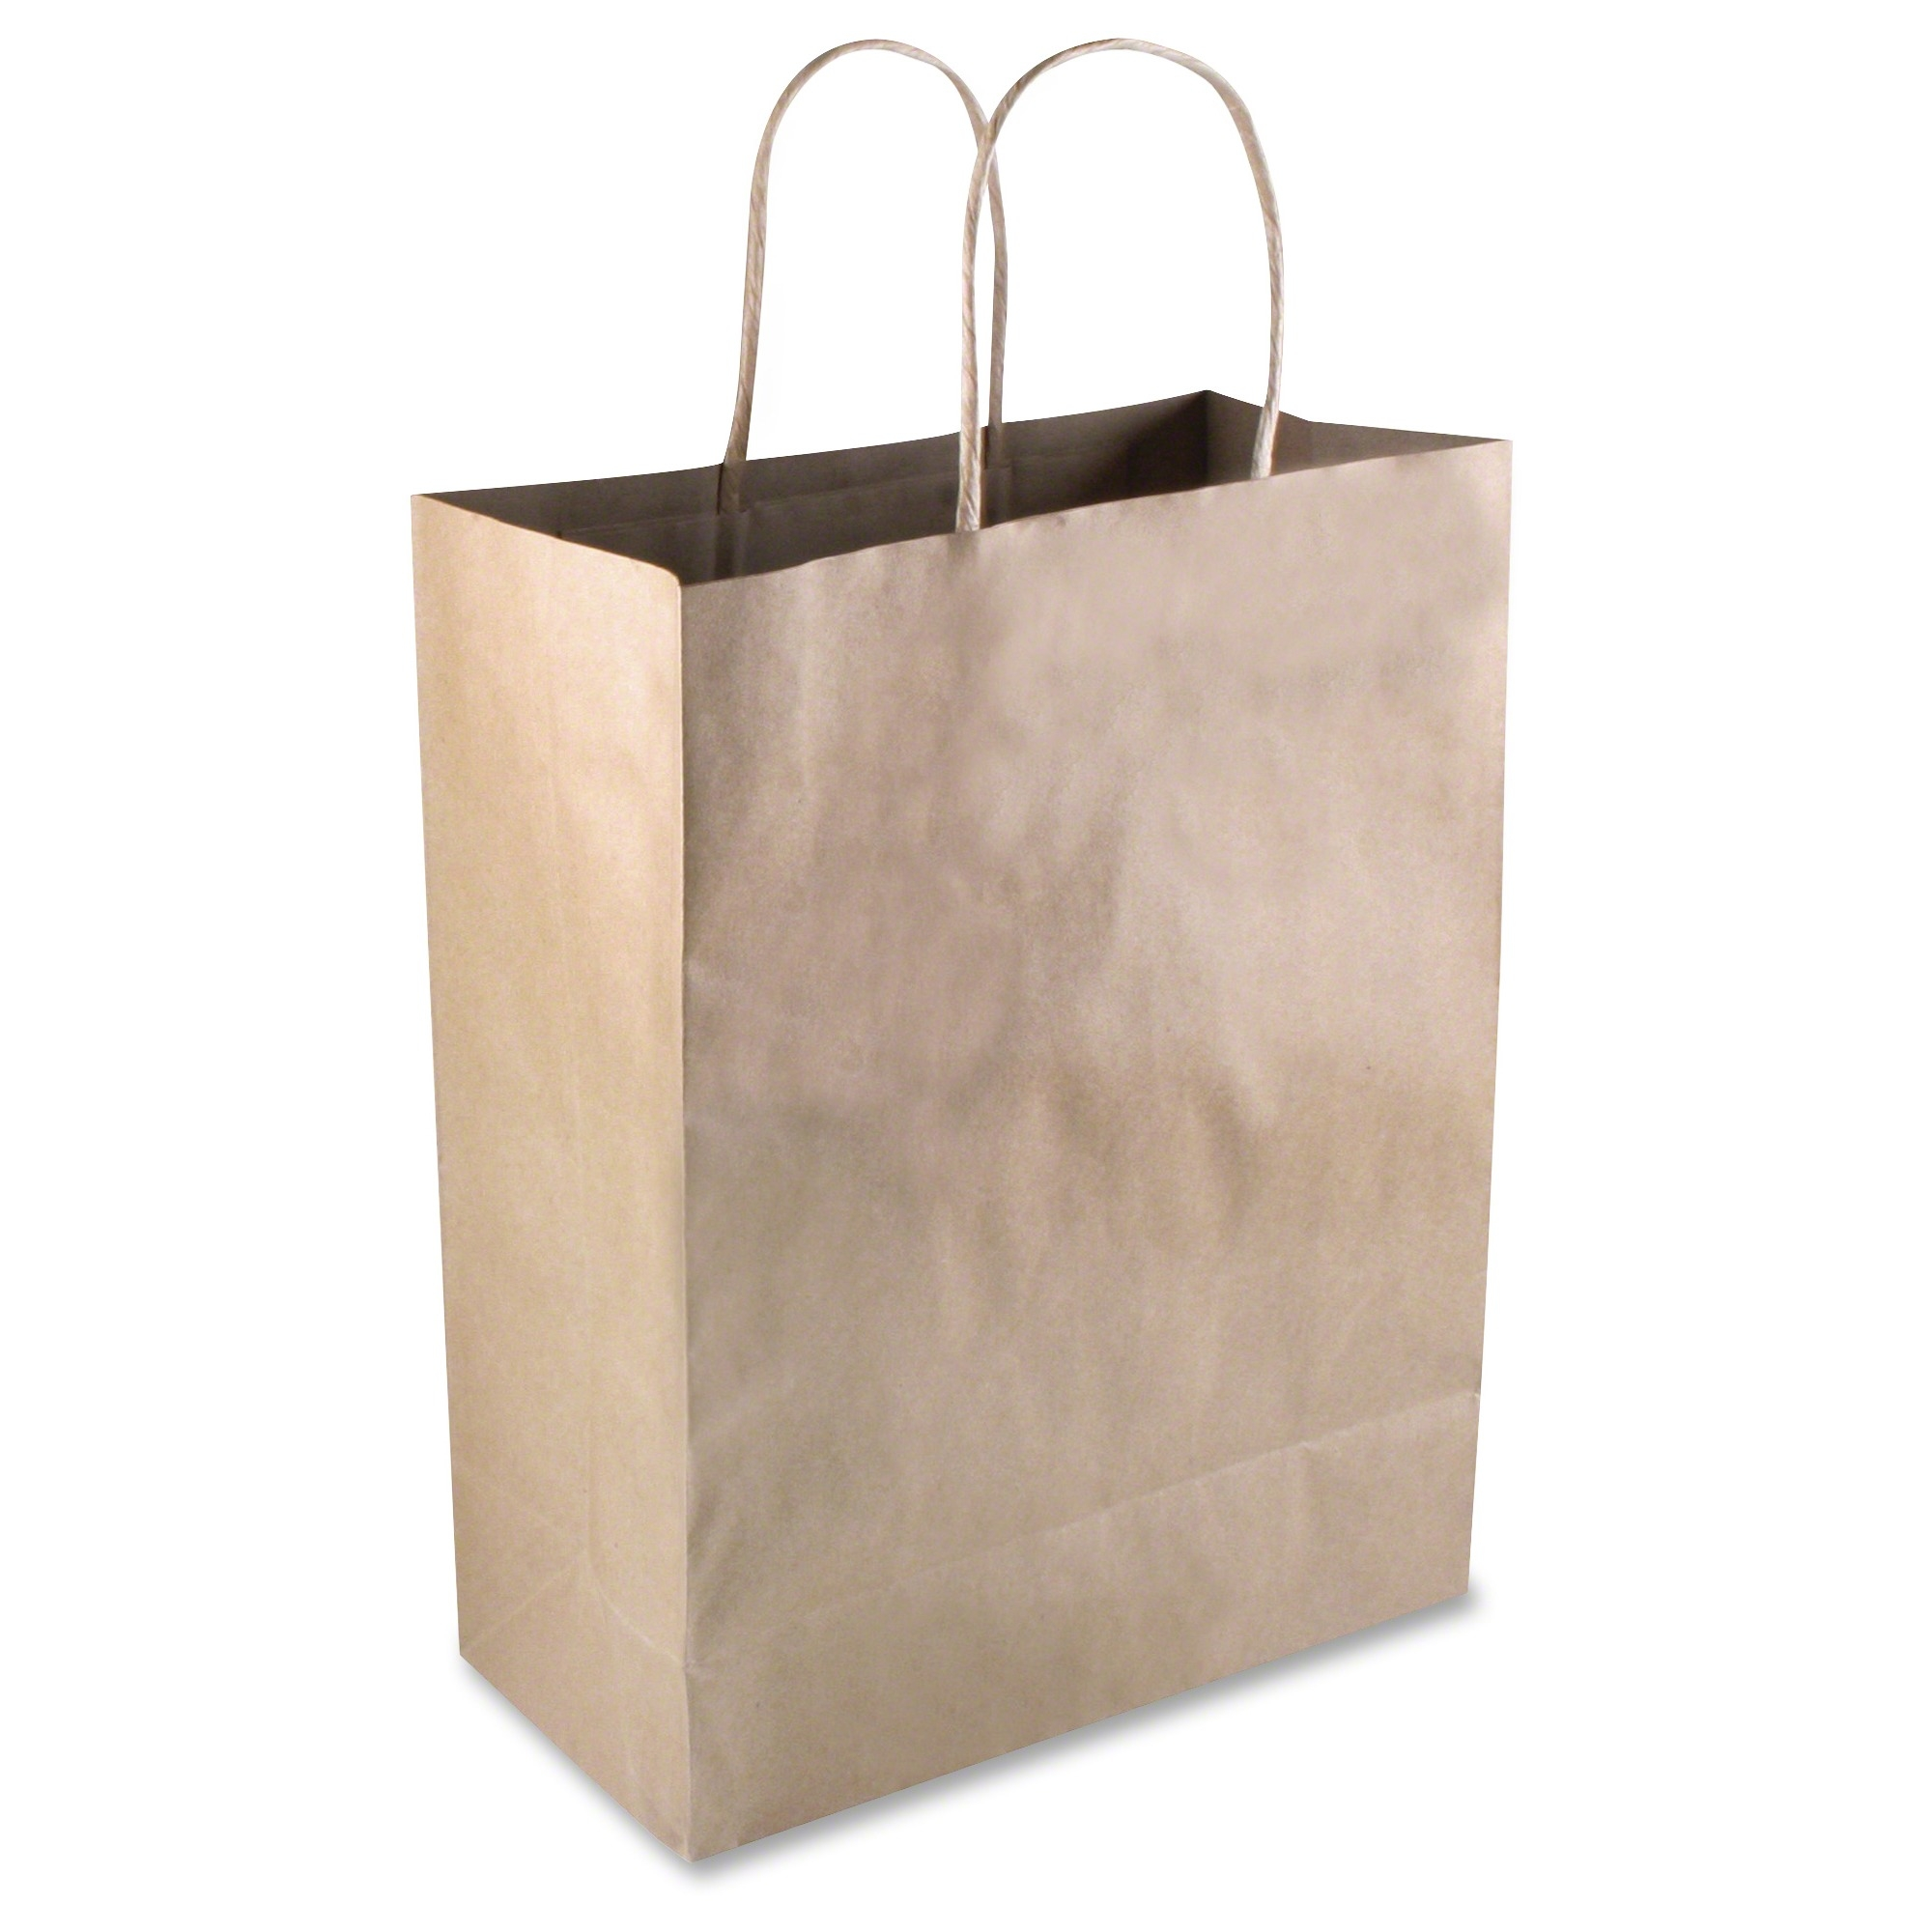 Cosco Premium Large Brown Paper Shopping Bags - 10